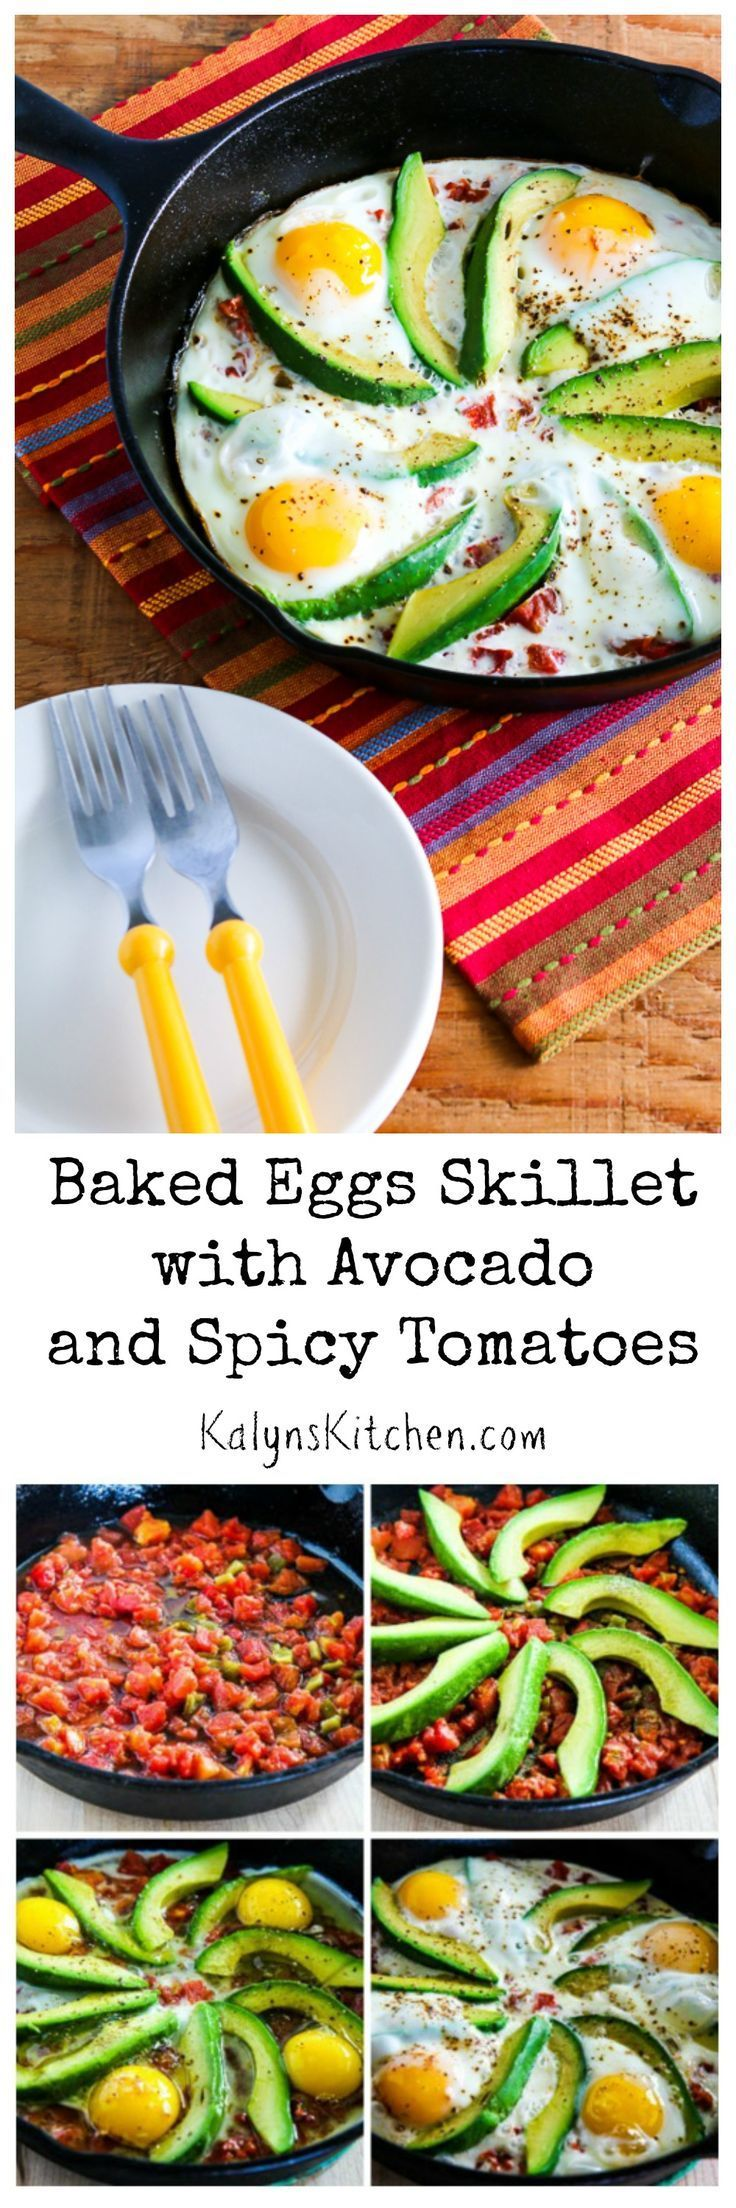 ... Egg recipes on Pinterest | Skillets, Sweet potato breakfast and Bacon